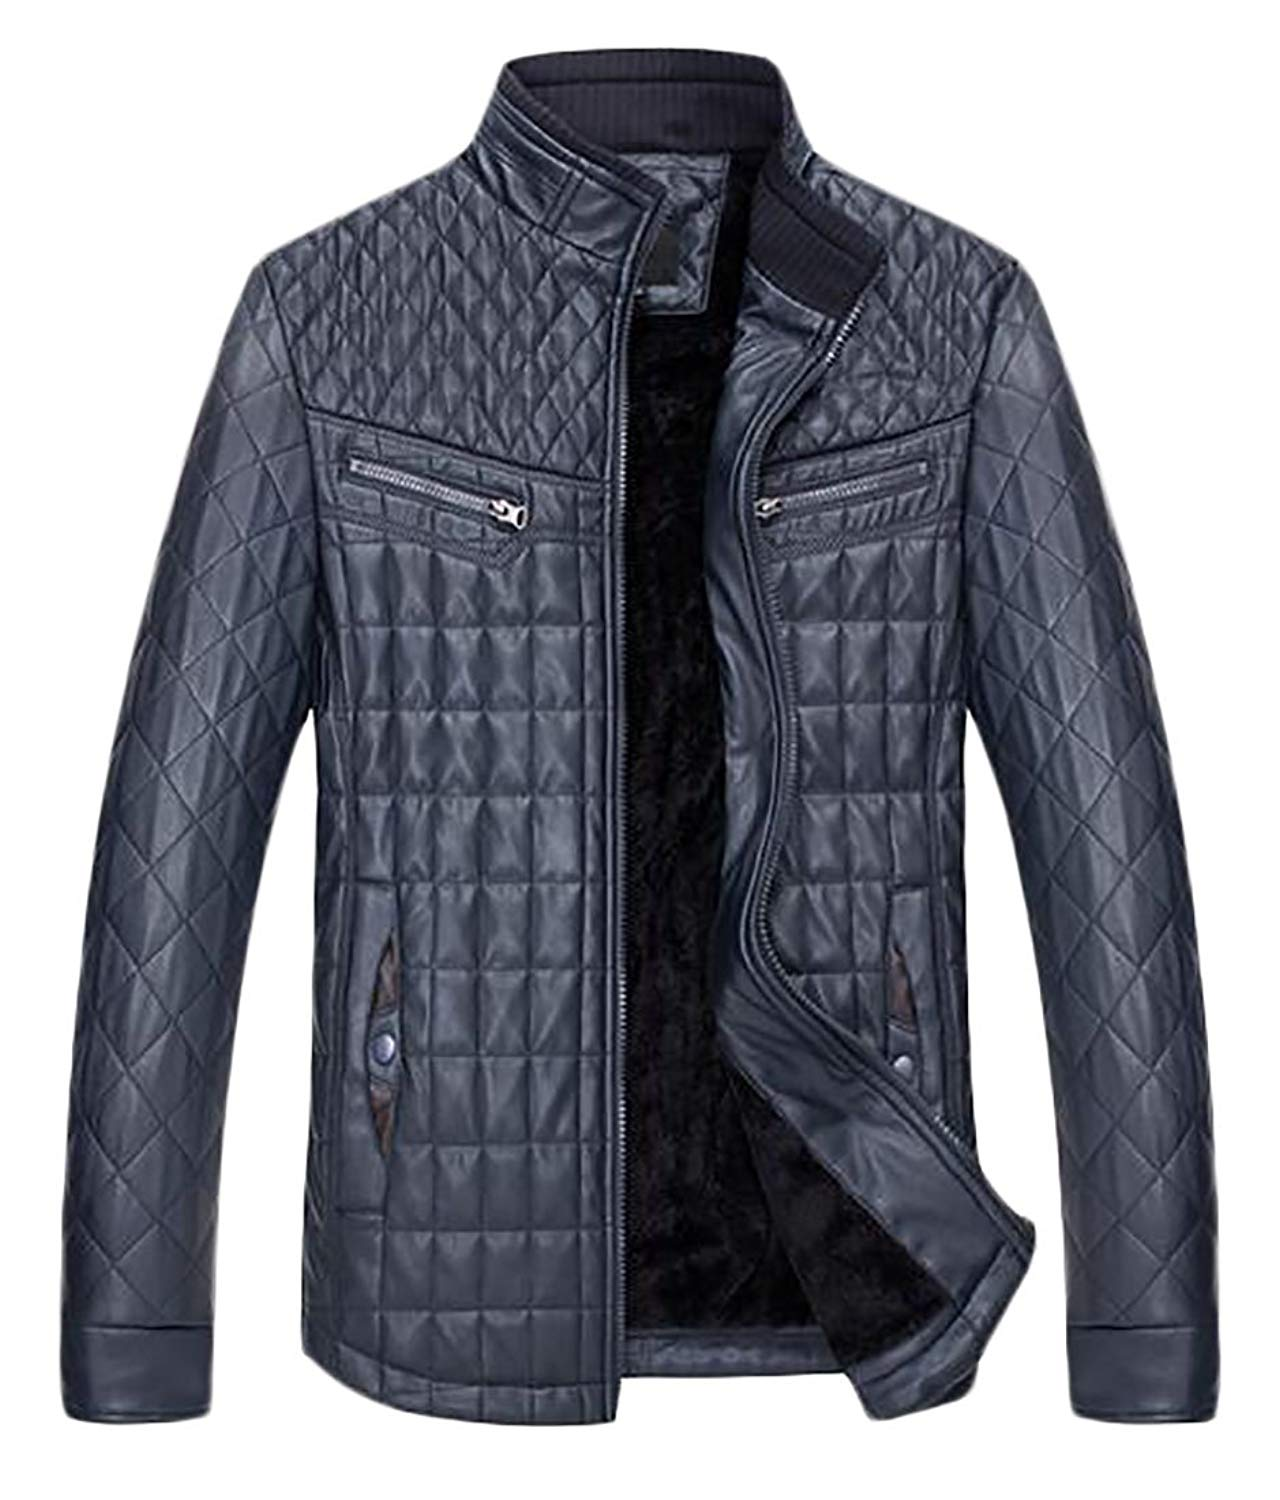 fb9975fbea1 Get Quotations · WSPLYSPJY Men¡¯s Warm Faux Leather Jacket Stand Collar Winter  Jacket Motorcycle Zip Jacket